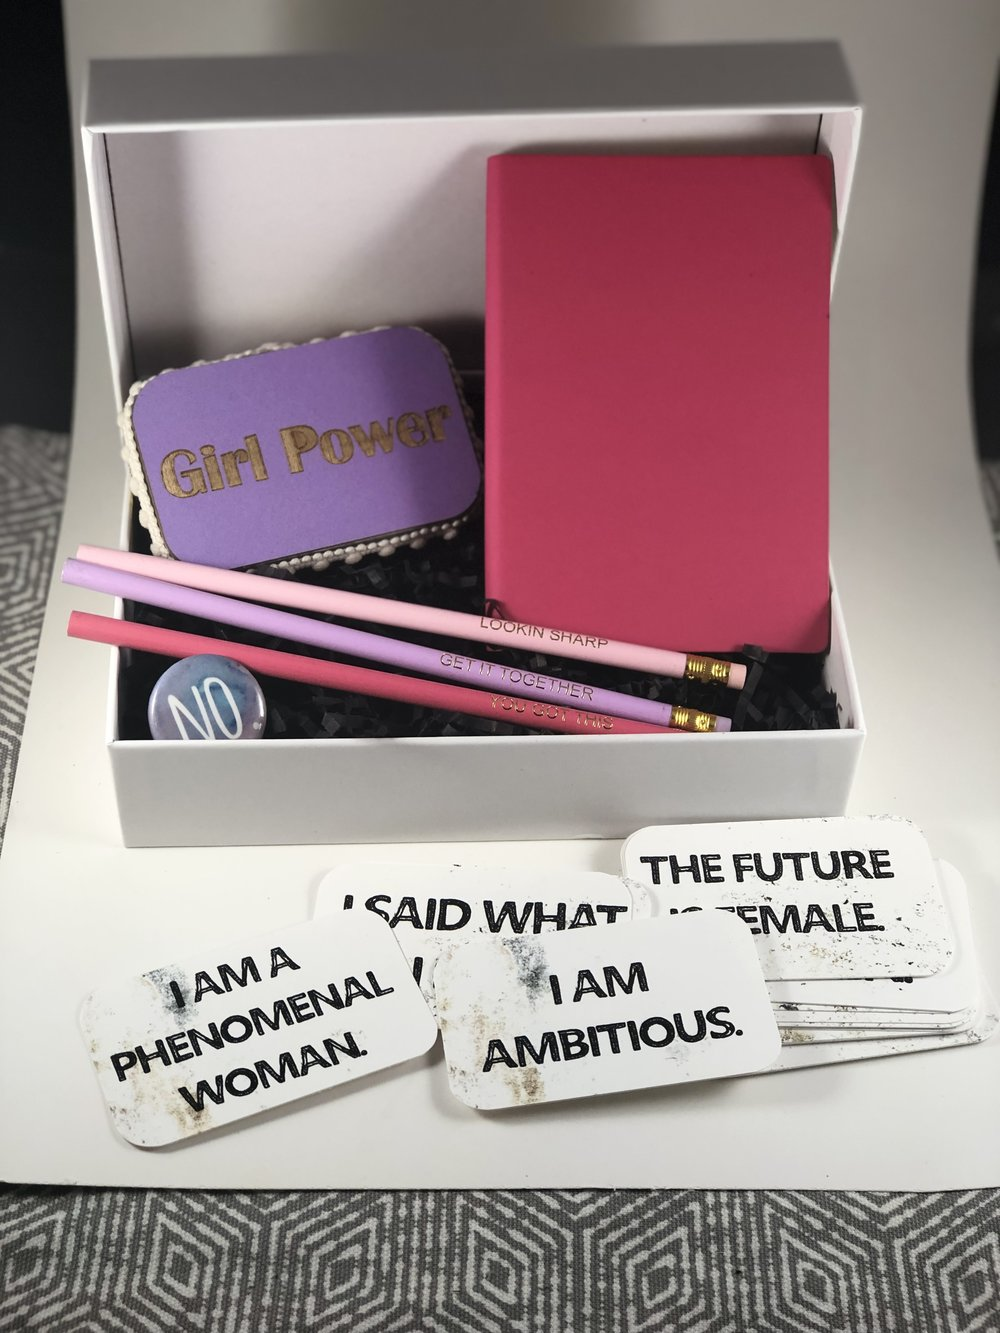 Custom gift set by Mikole Montgomery - woman empowered gift set with laser engraved mat board packaging